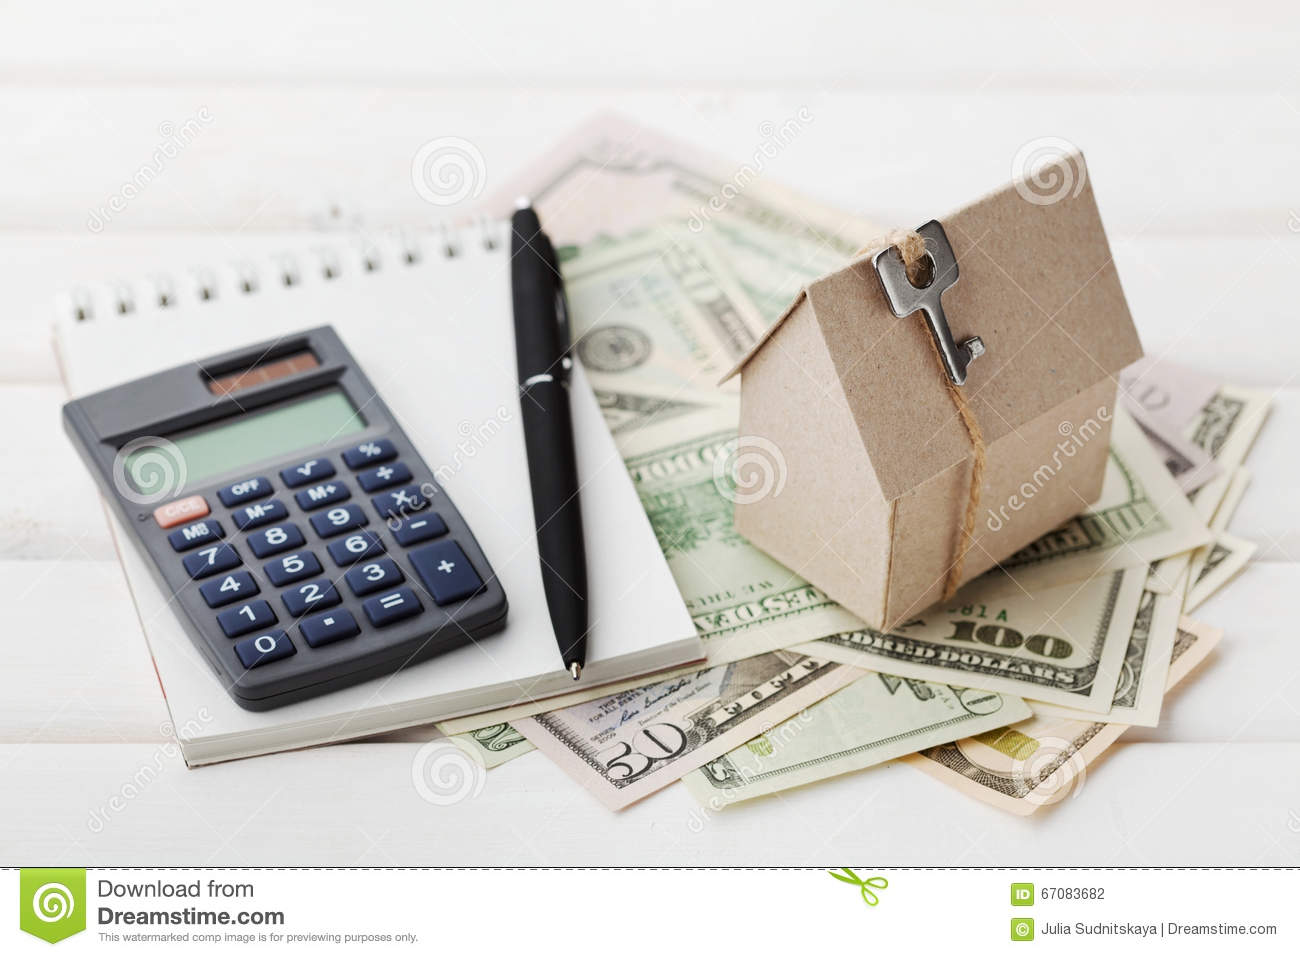 Model cardboard house with key and tape measure on for Build new house calculator